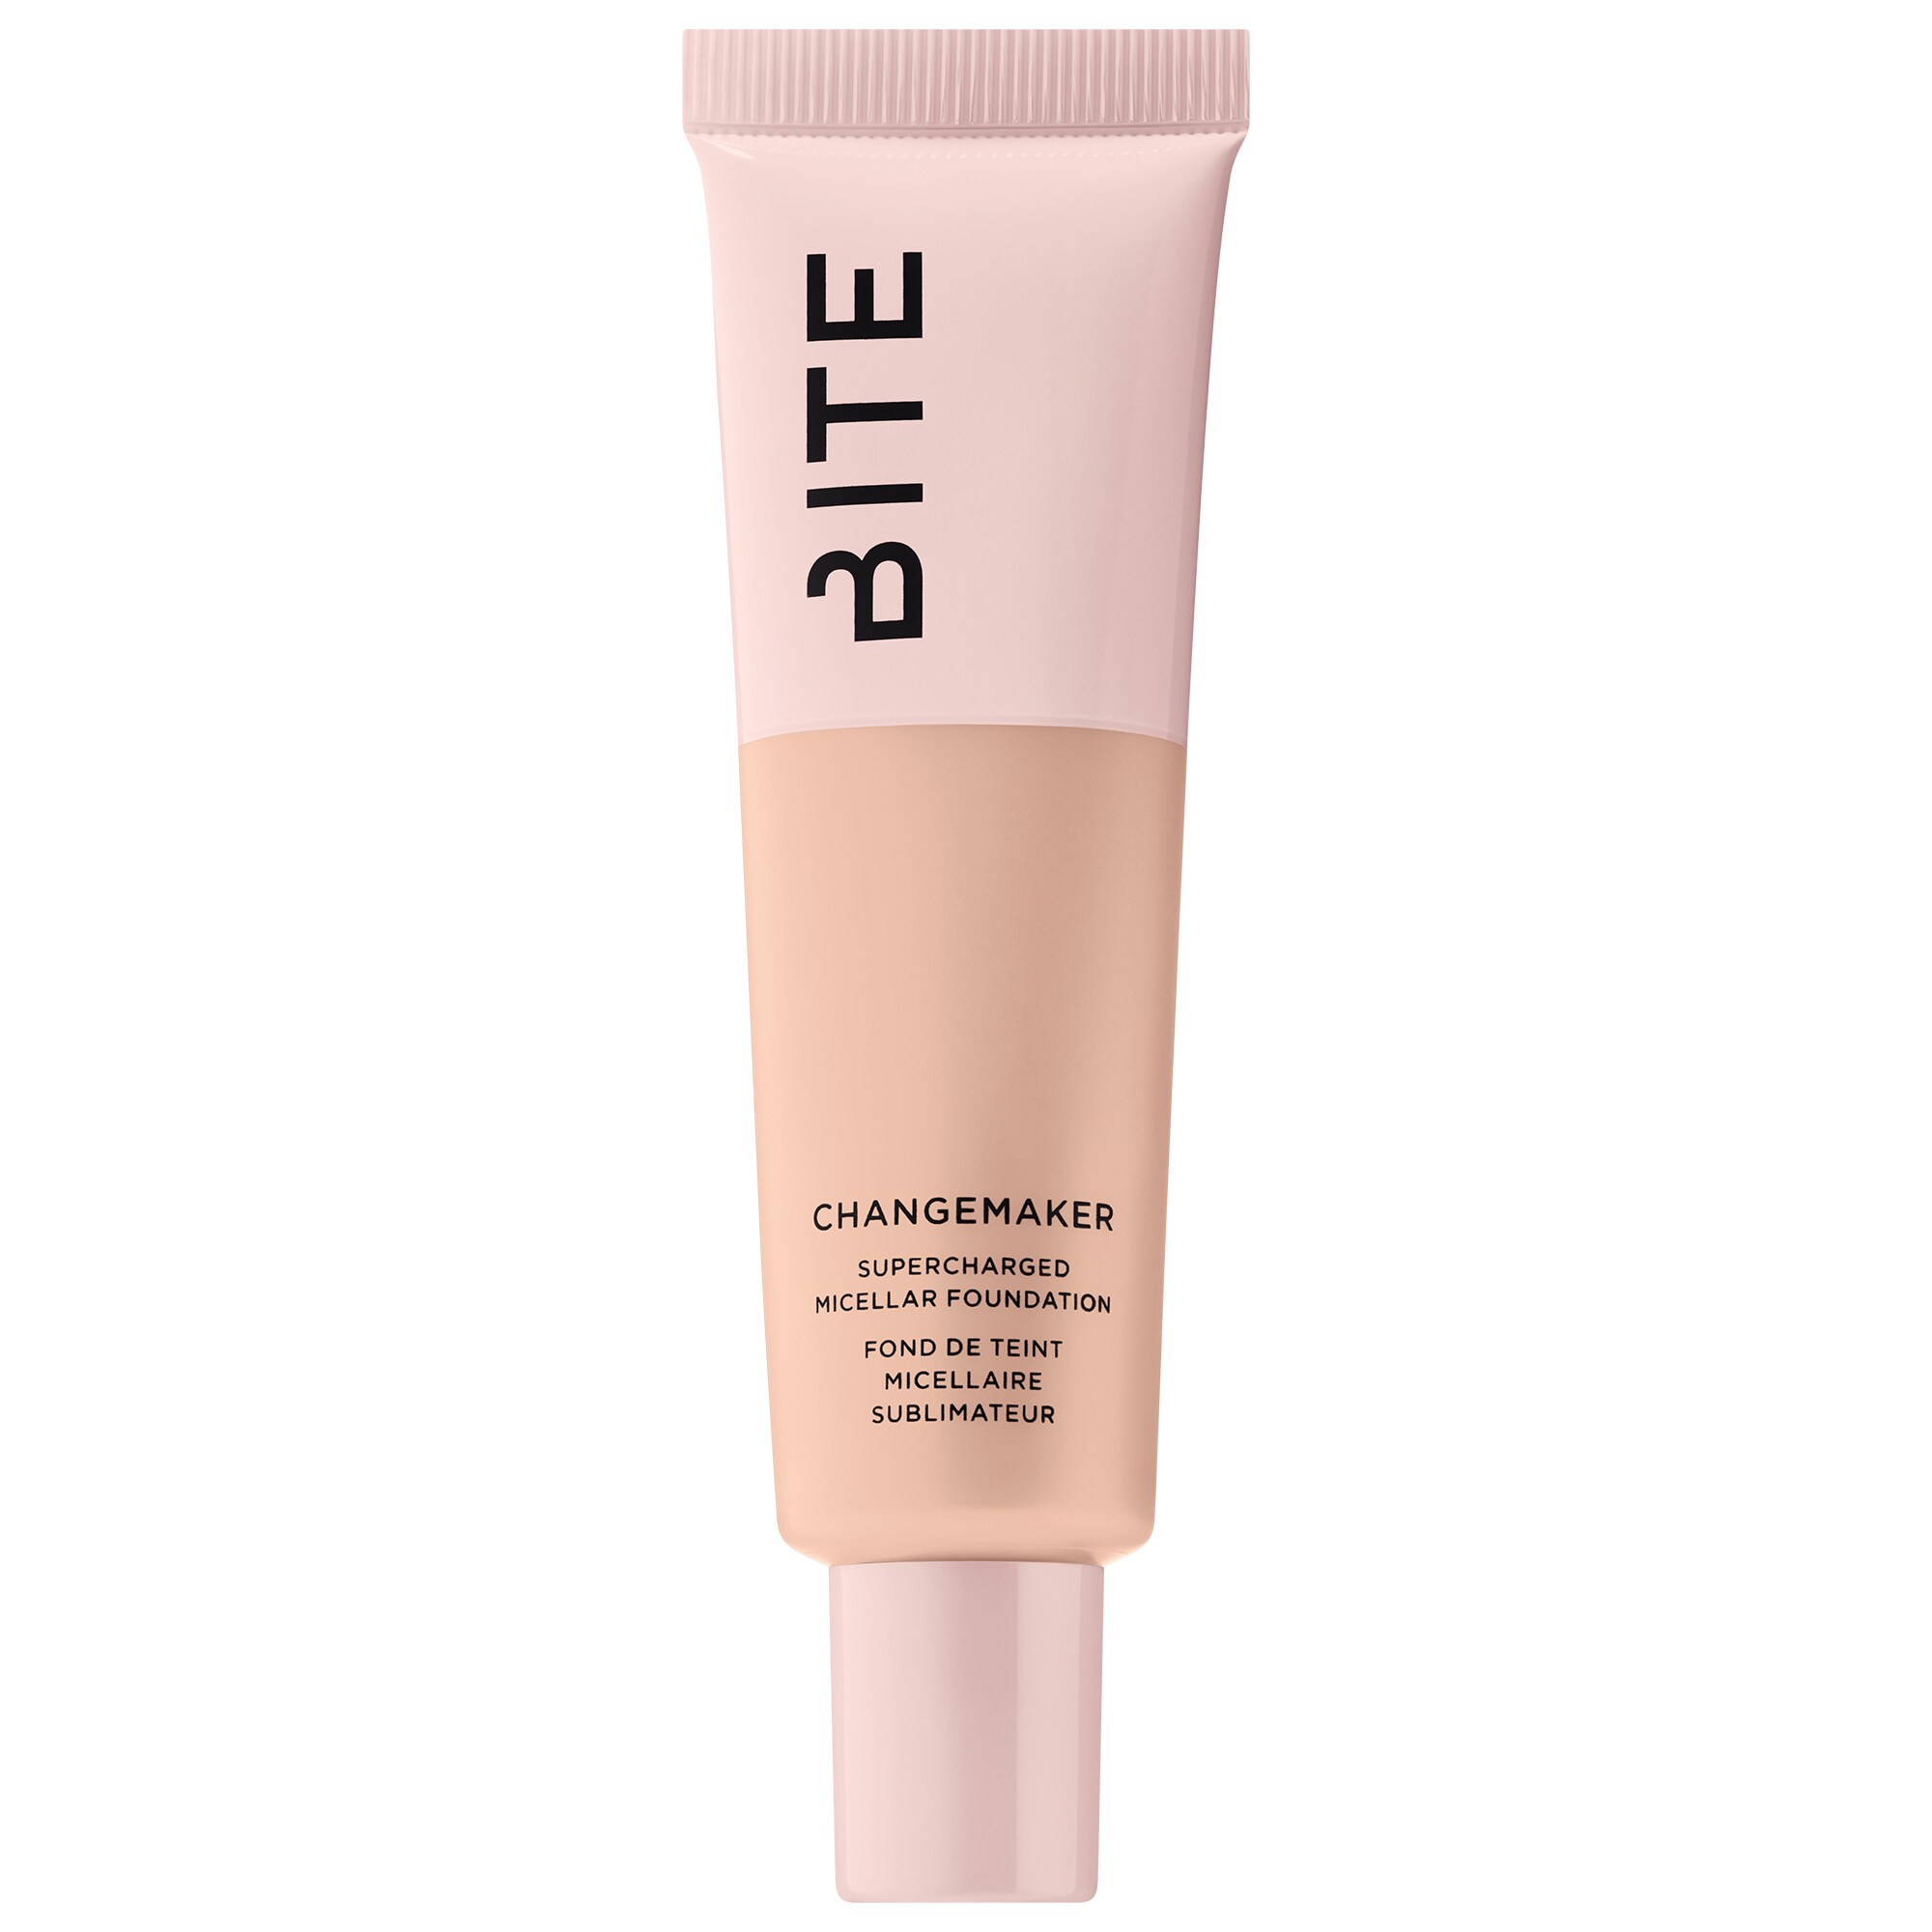 Bite - Changemaker Supercharged Micellar Foundation